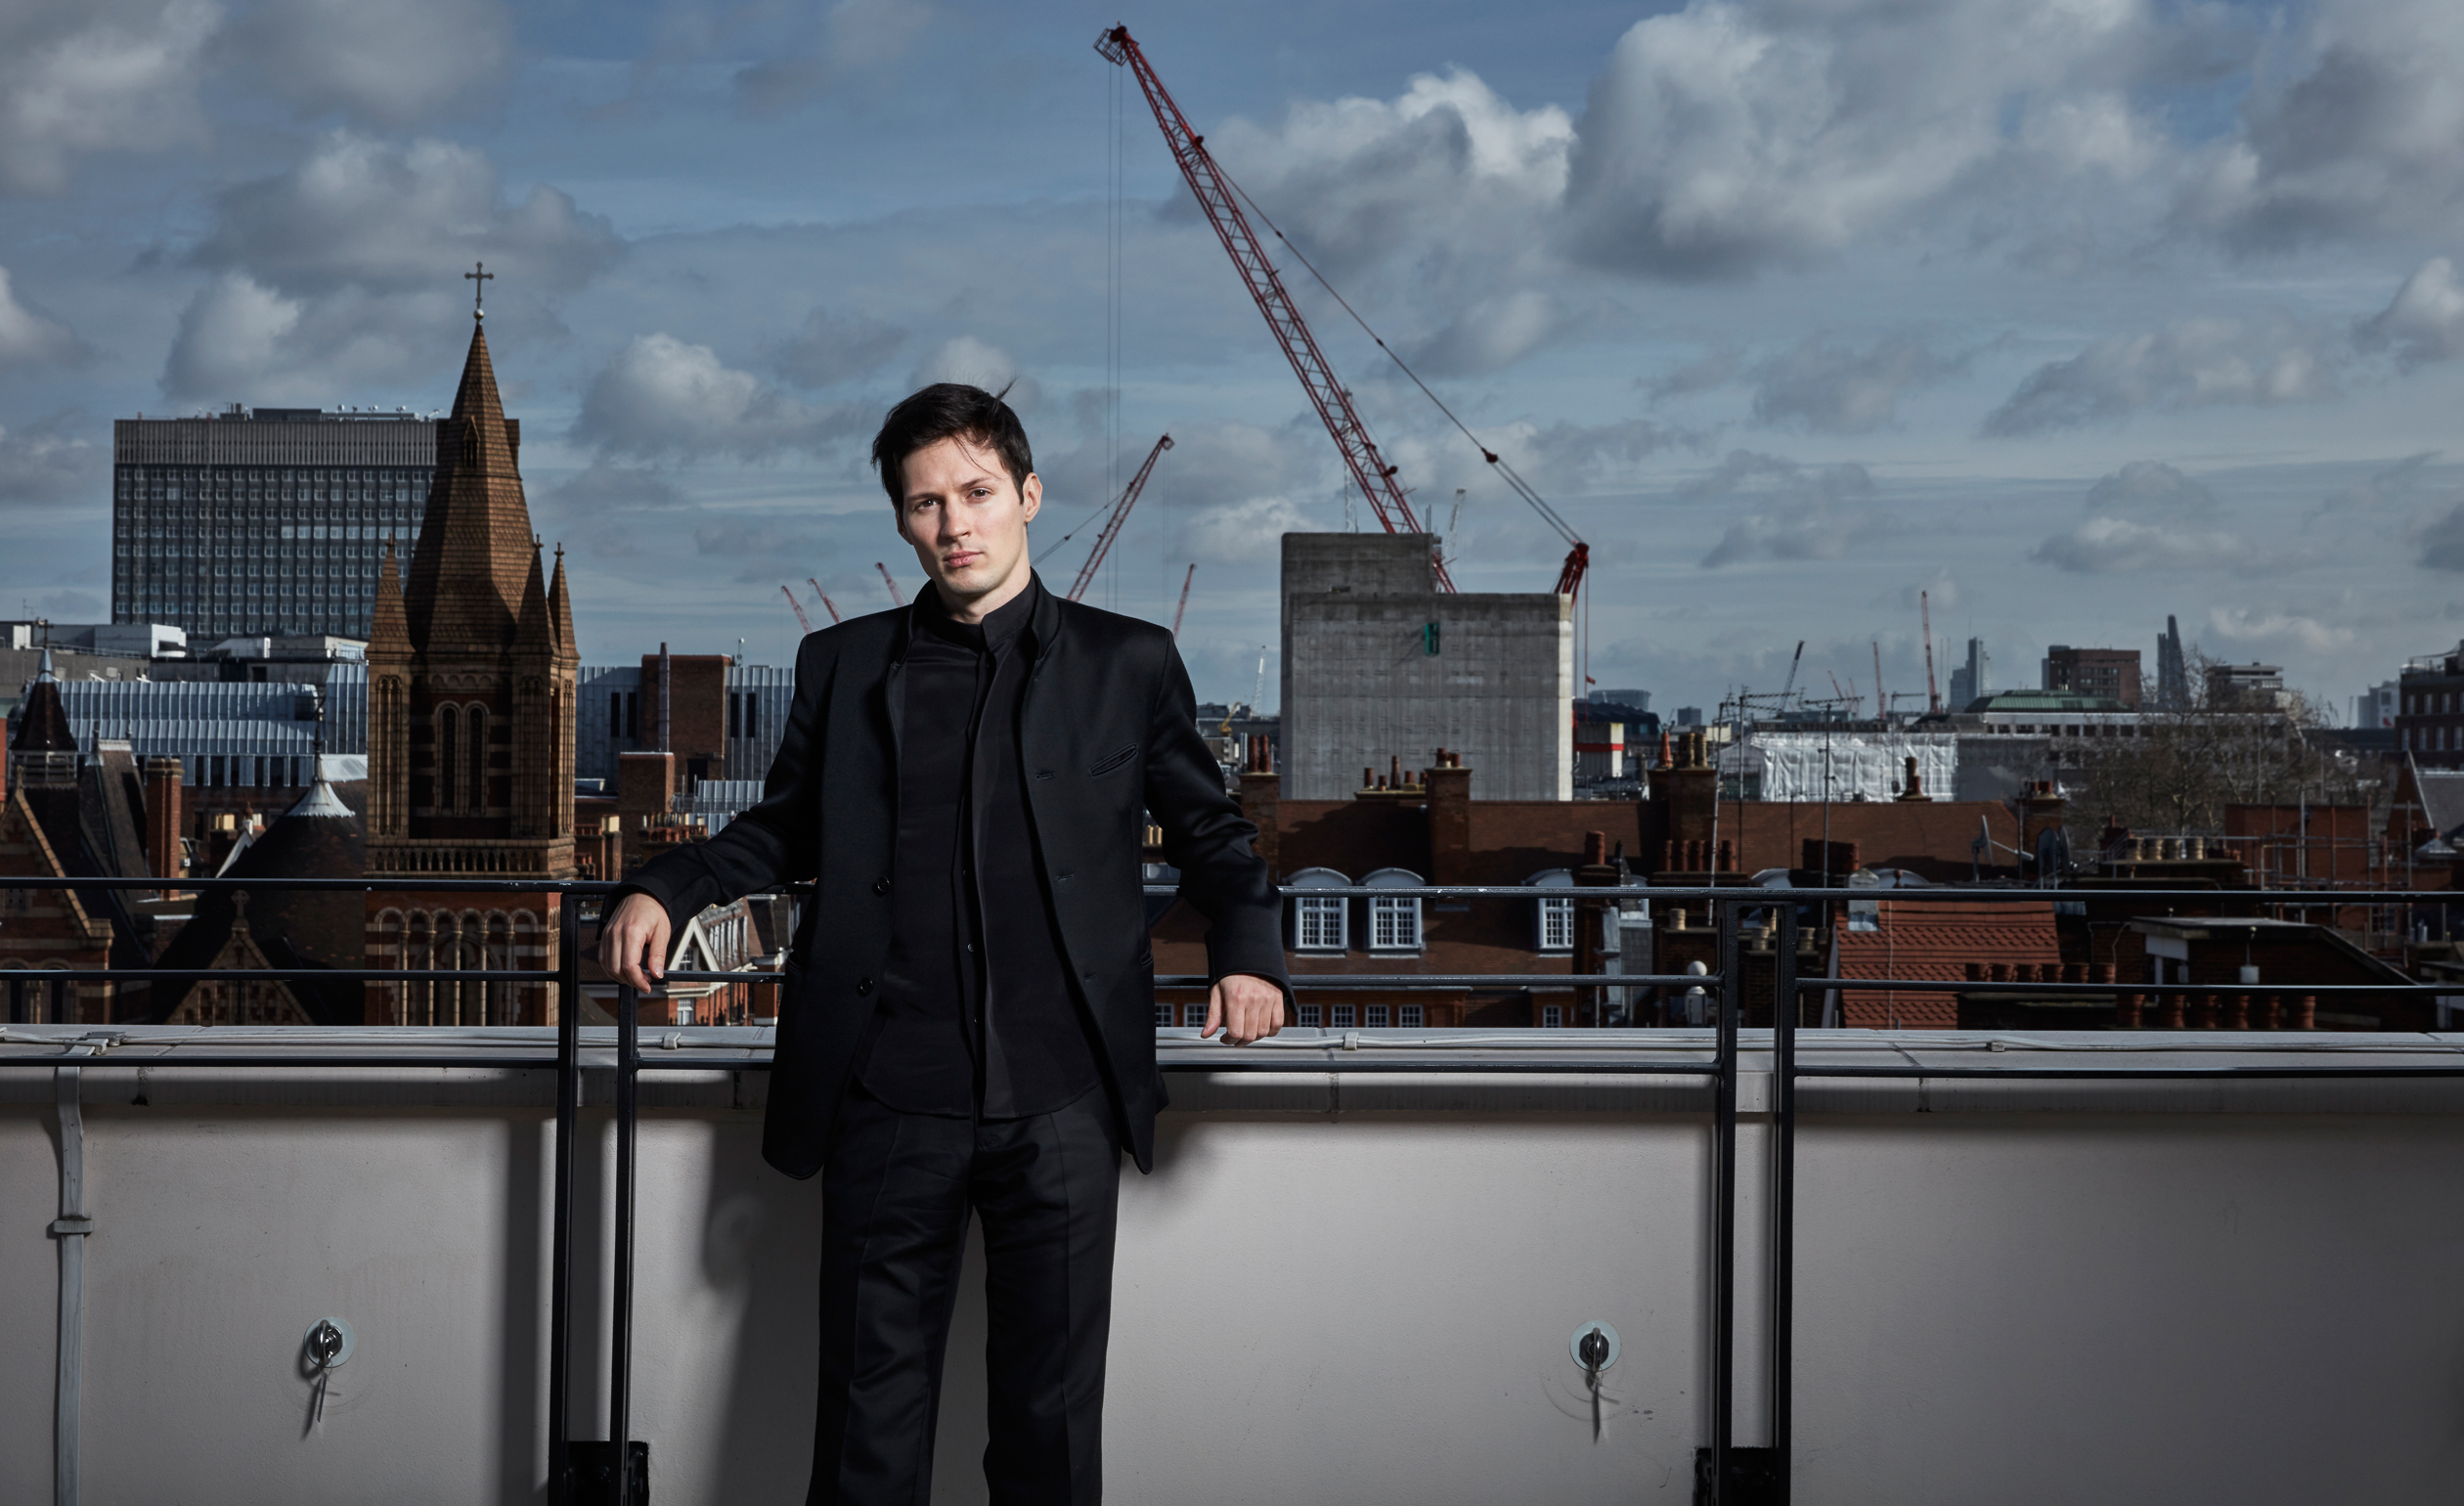 Pavel Durov in London, February 12th.